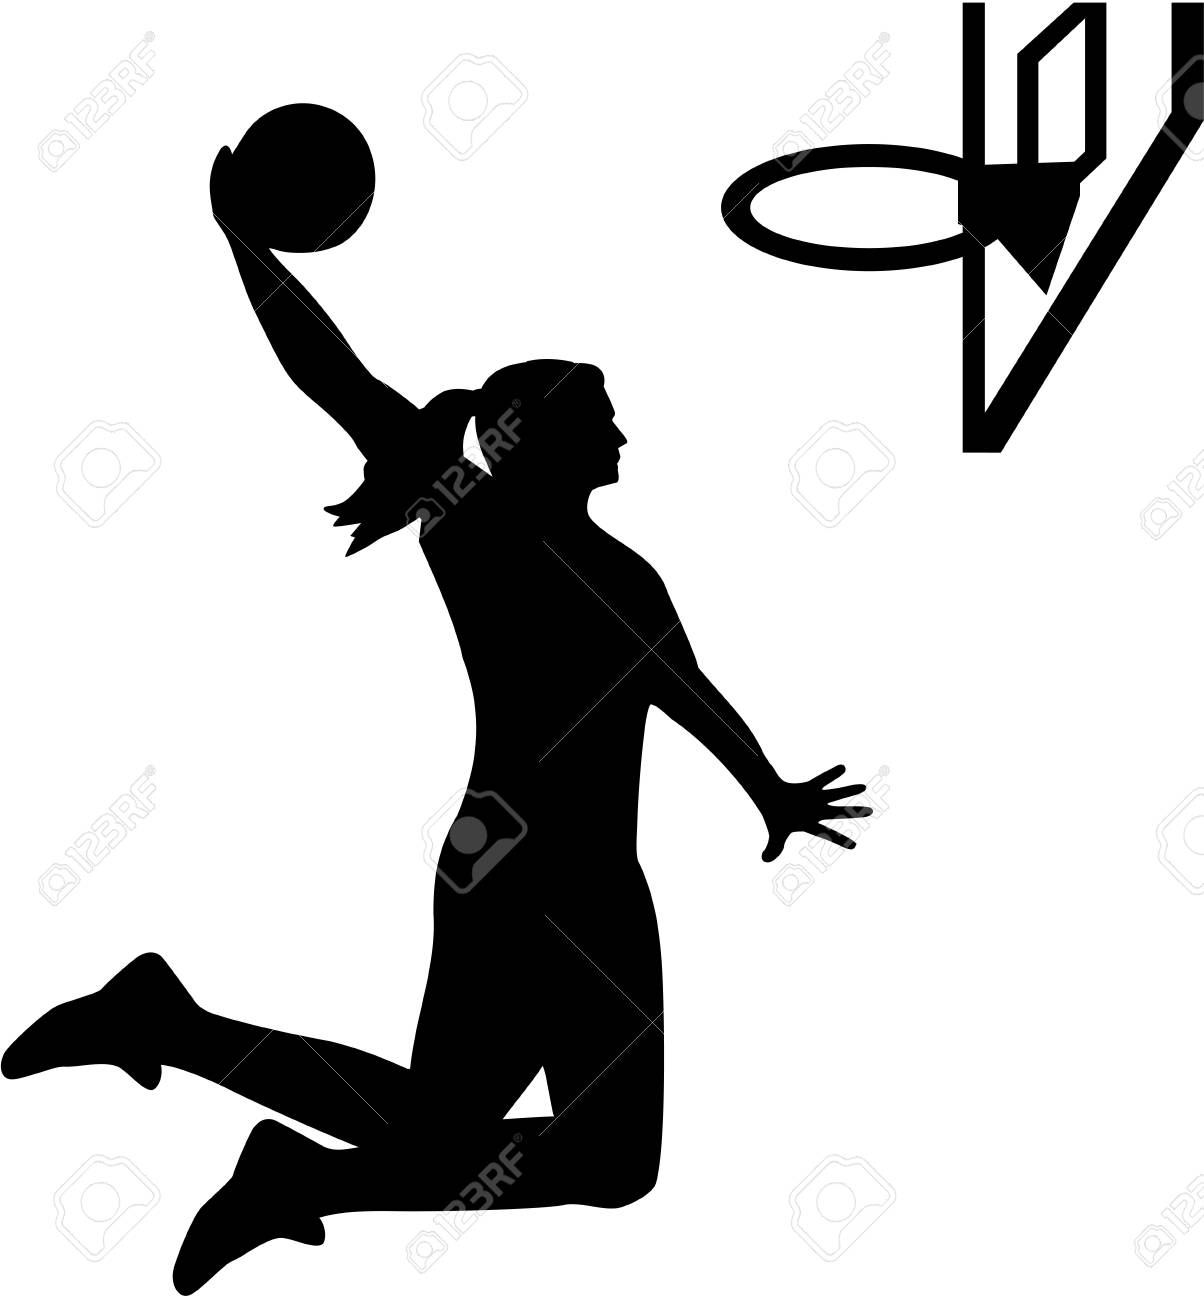 female basketball player royalty free cliparts vectors and stock rh 123rf com basketball team silhouette vector free basketball ball silhouette vector